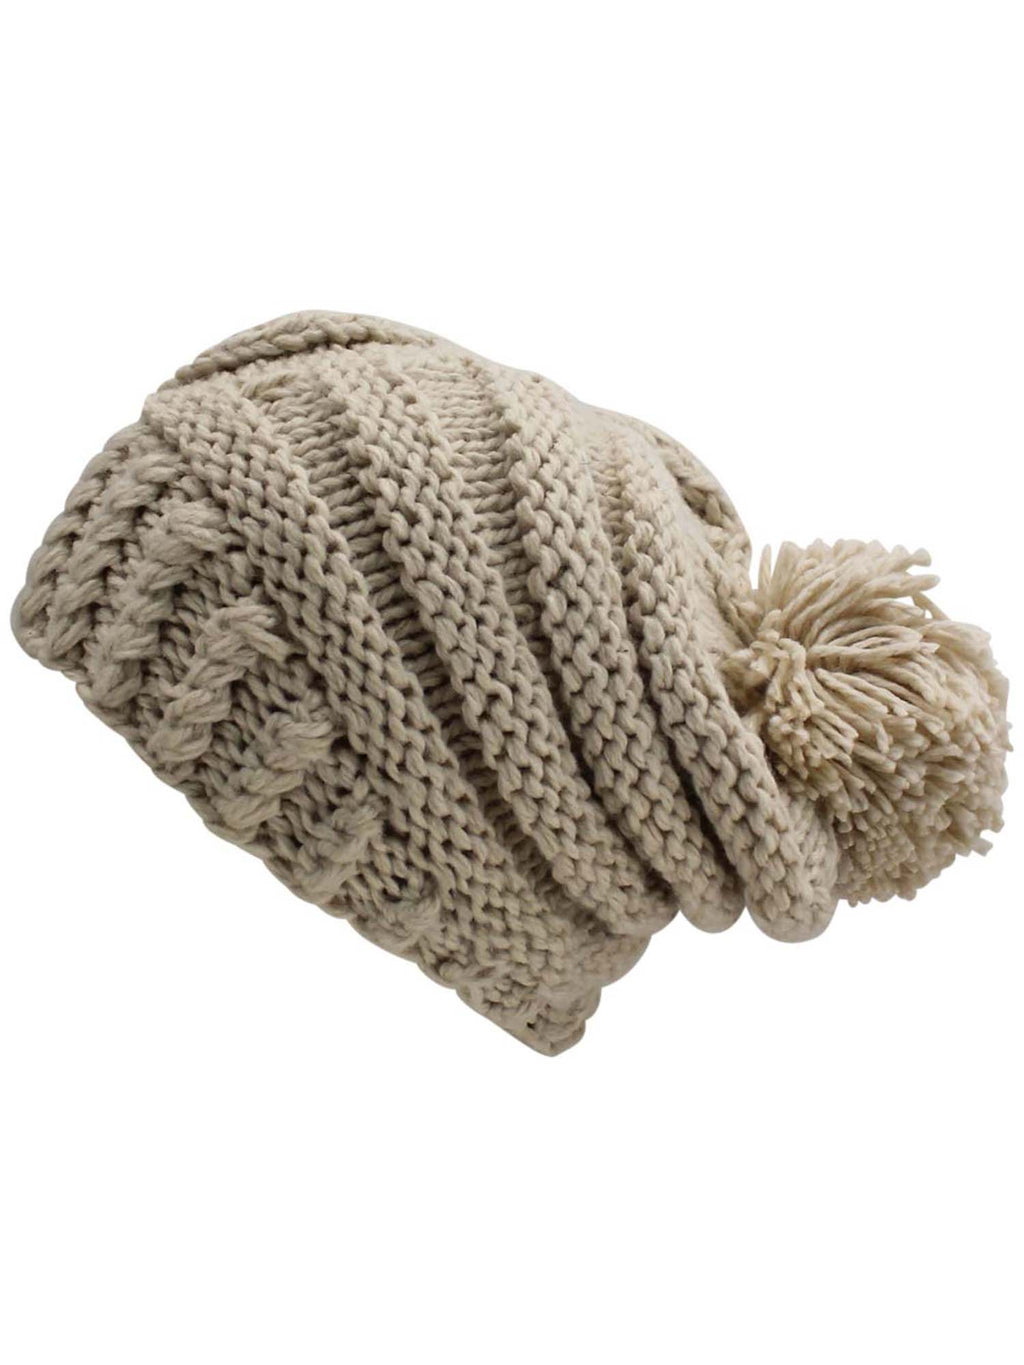 Extra Thick Heavy Winter Slouchy Knit Hat With Pom Pom